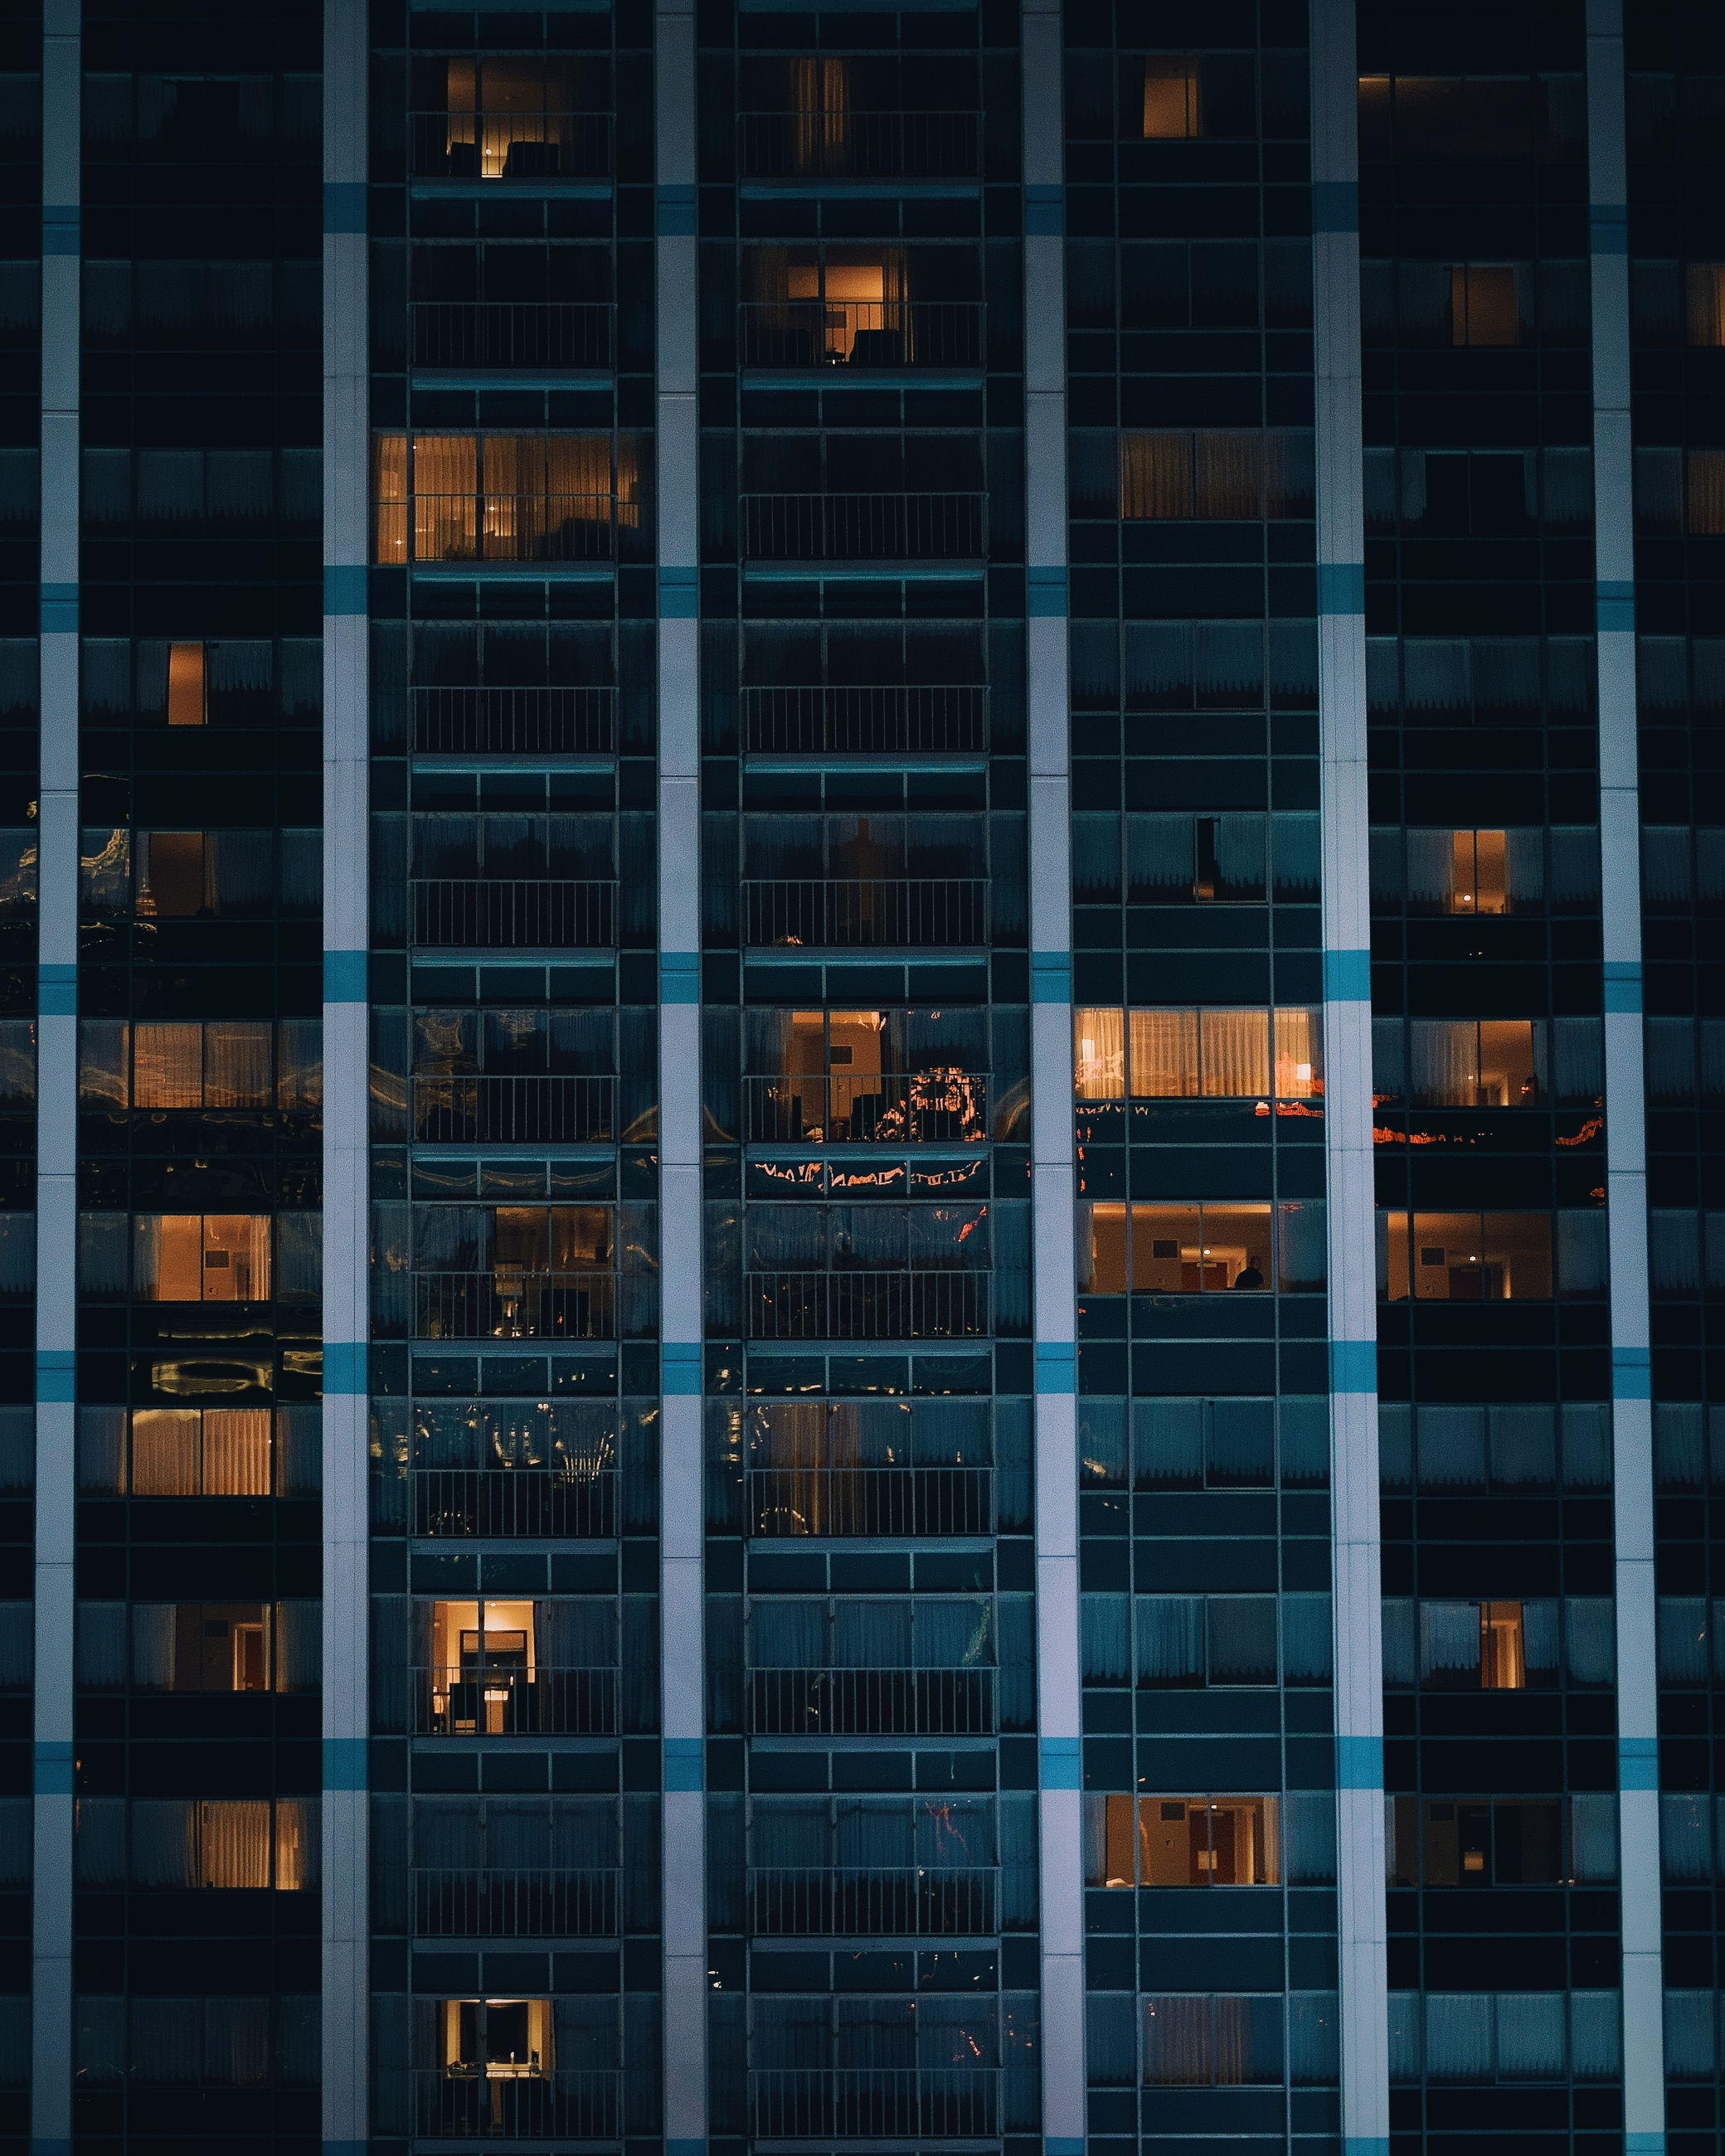 building exterior, architecture, built structure, window, city, building, modern, glass - material, reflection, office, office building exterior, night, no people, outdoors, full frame, transparent, working, illuminated, backgrounds, glass, skyscraper, window frame